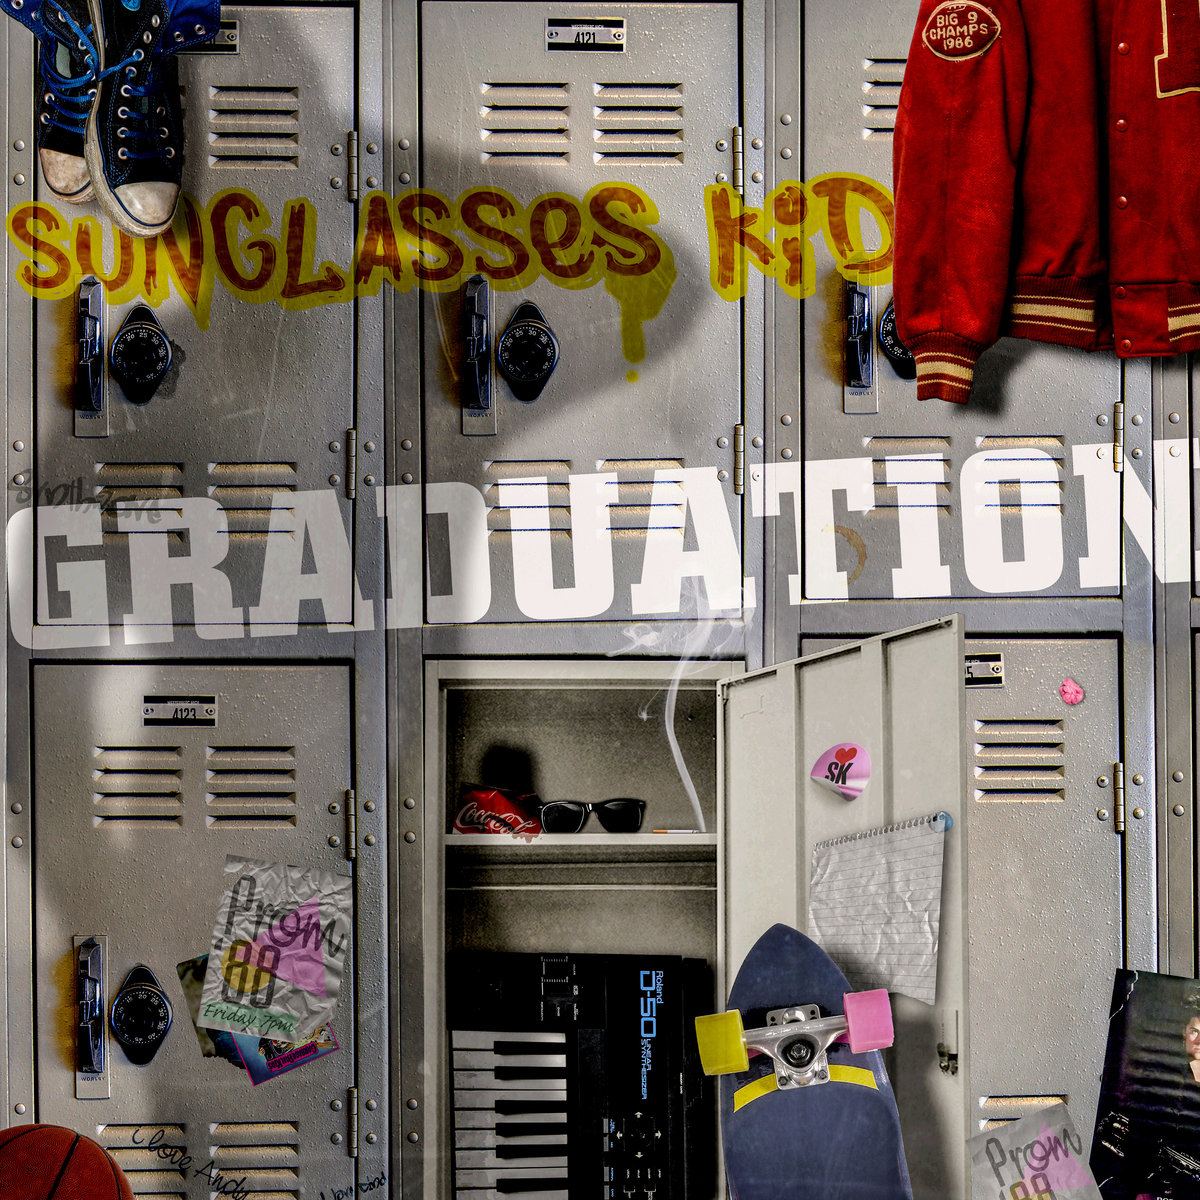 Sunglasses+Kid+ +Graduation+%28Album+Cover%29 - Sunglasses Kid - Graduation